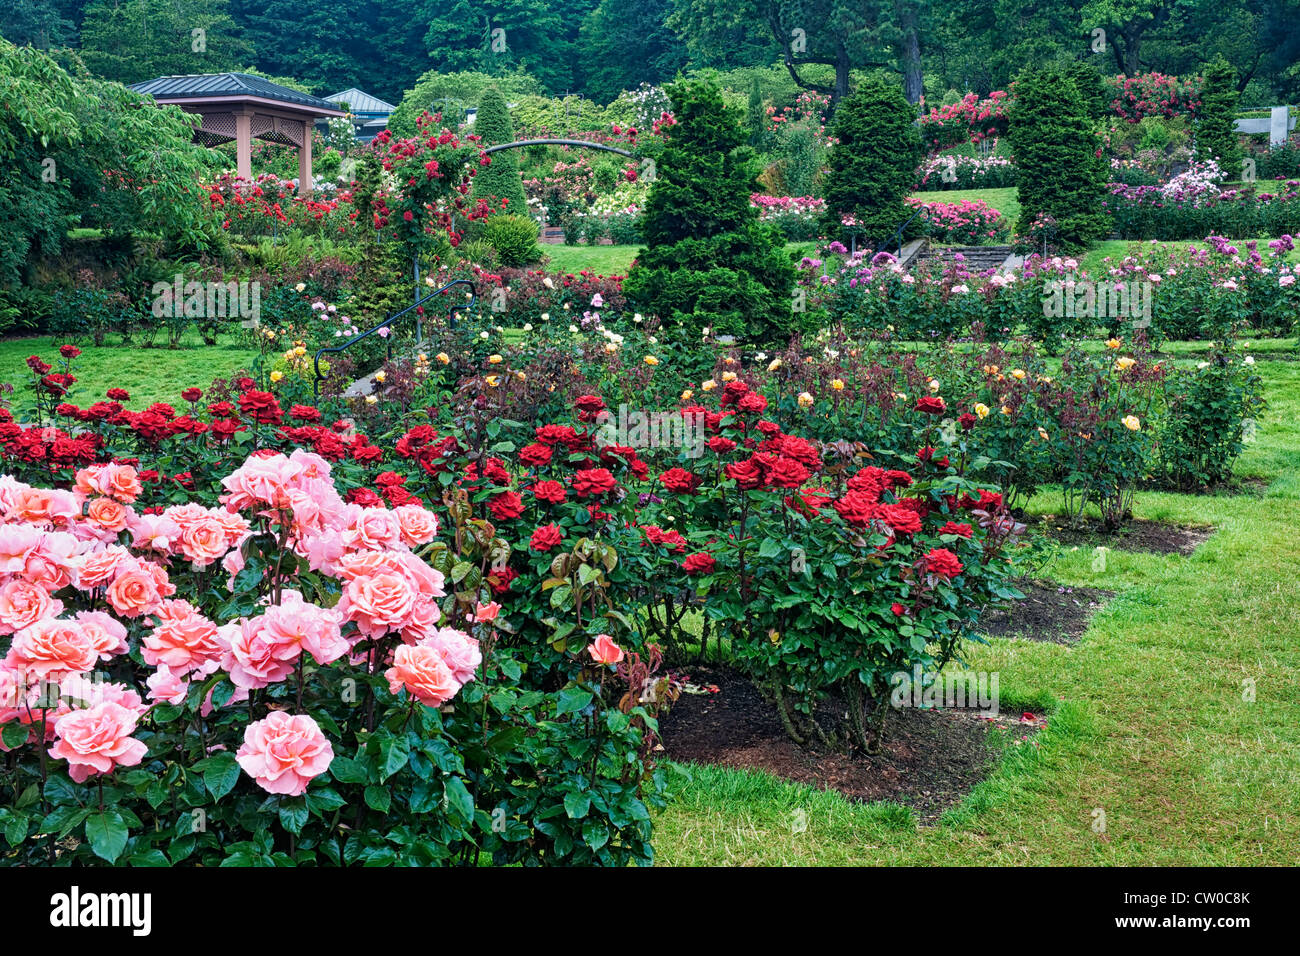 Portland s international rose test garden in washington park displays stock photo royalty free for Portland international rose test garden